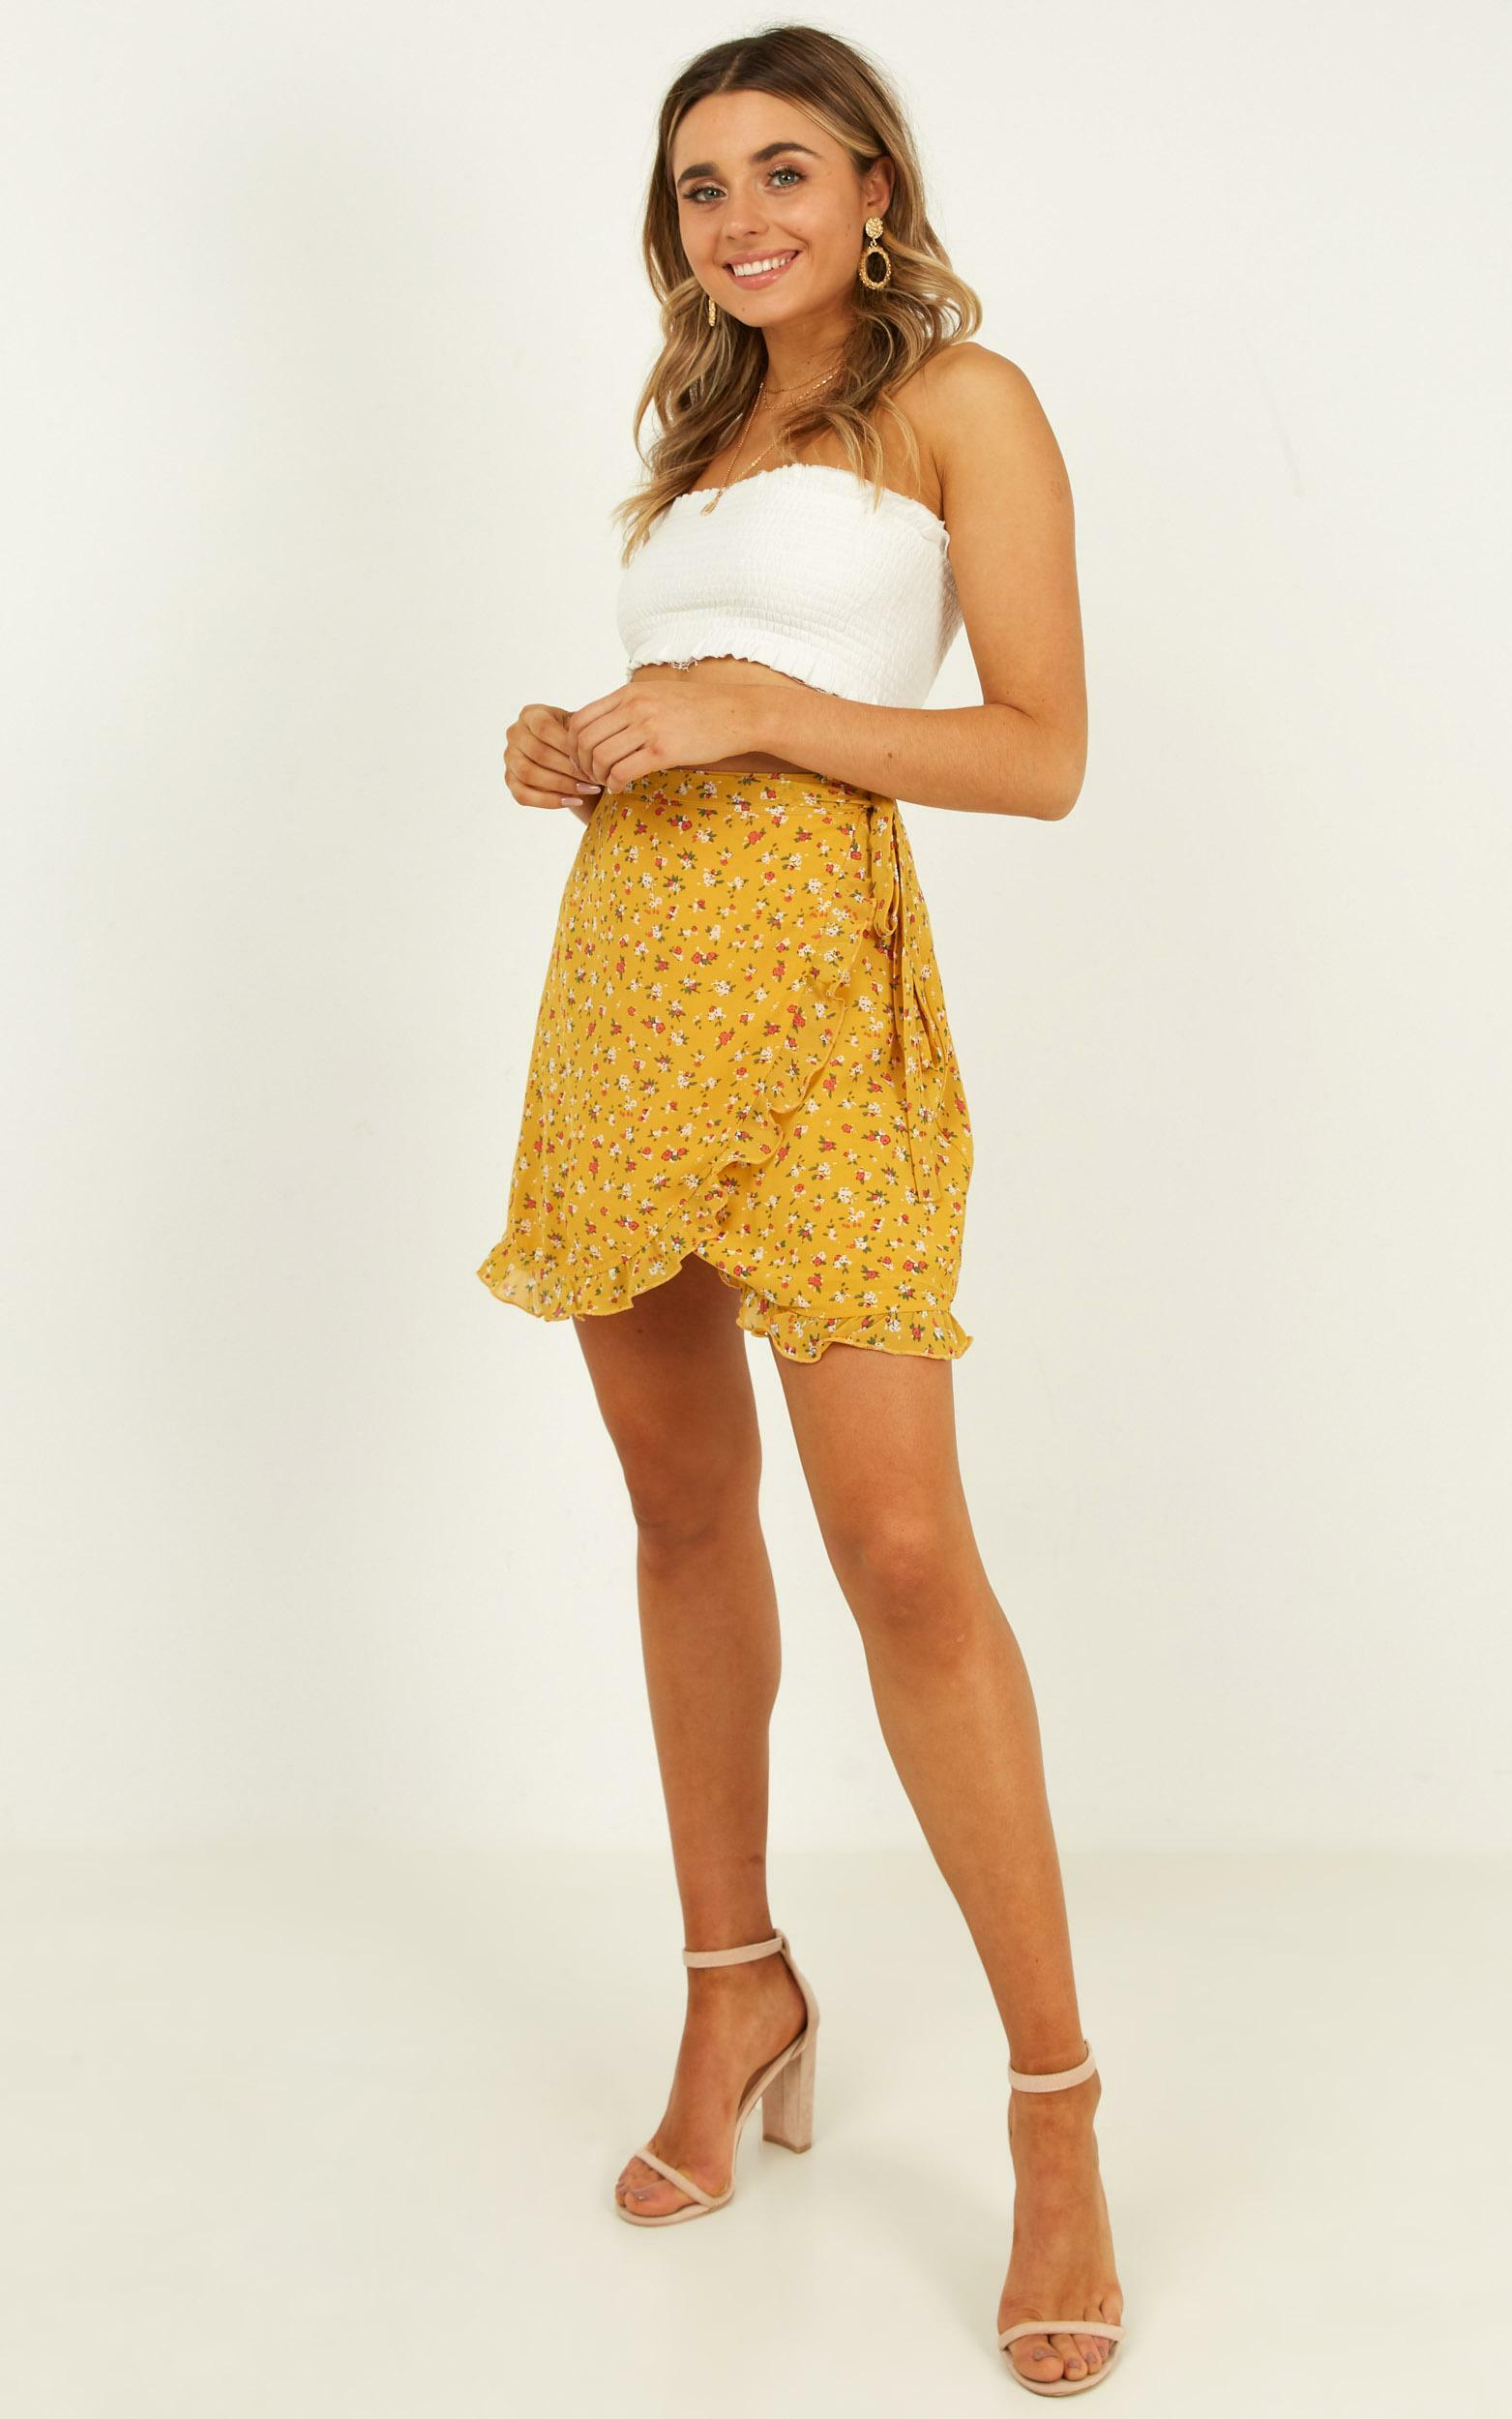 Started With A Kiss Skirt in mustard floral - 12 (L), Mustard, hi-res image number null